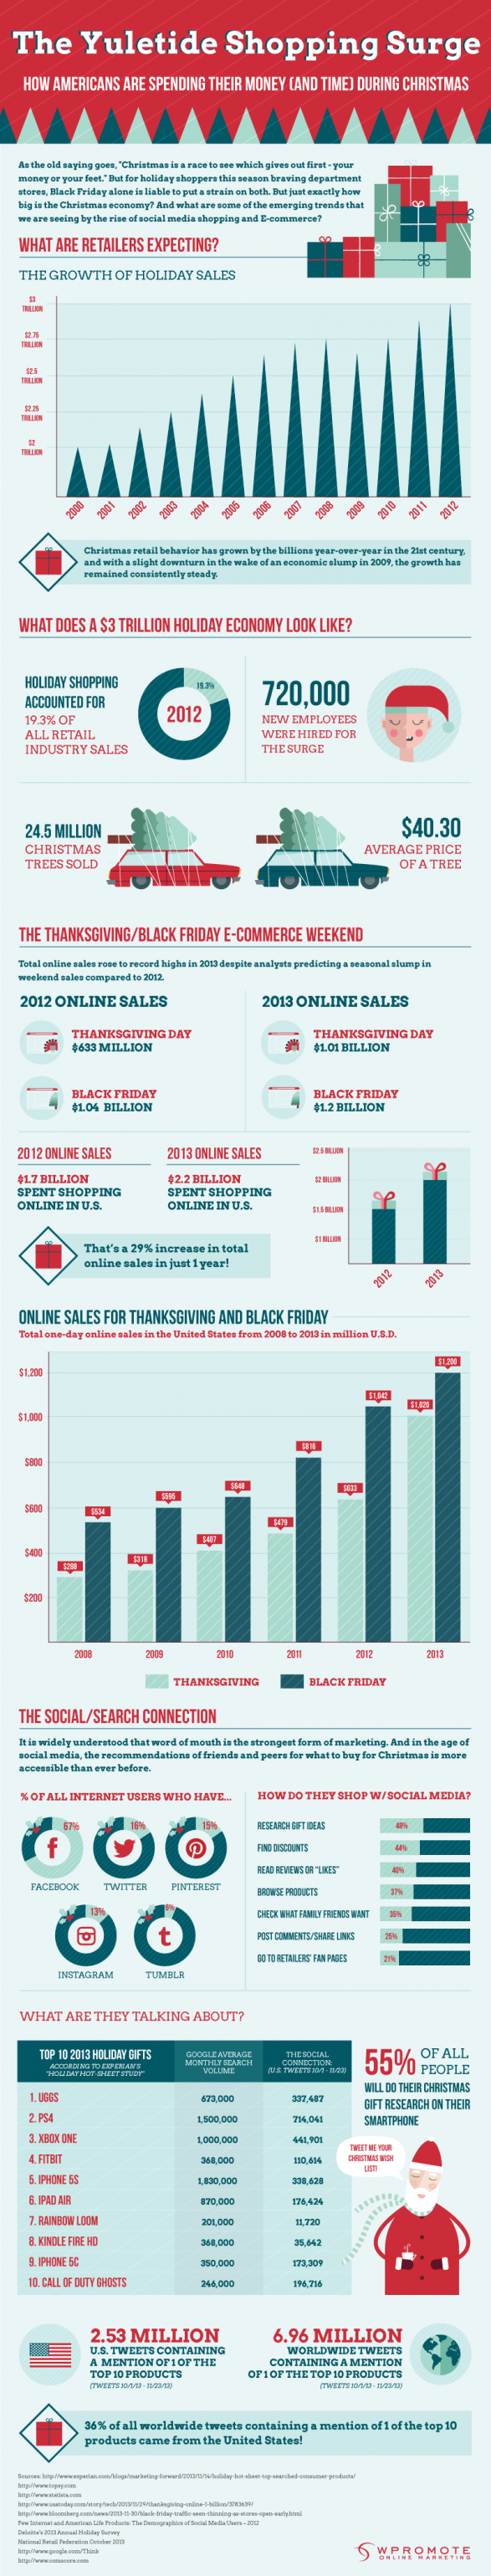 How Much Are American Shoppers Spending This Year?